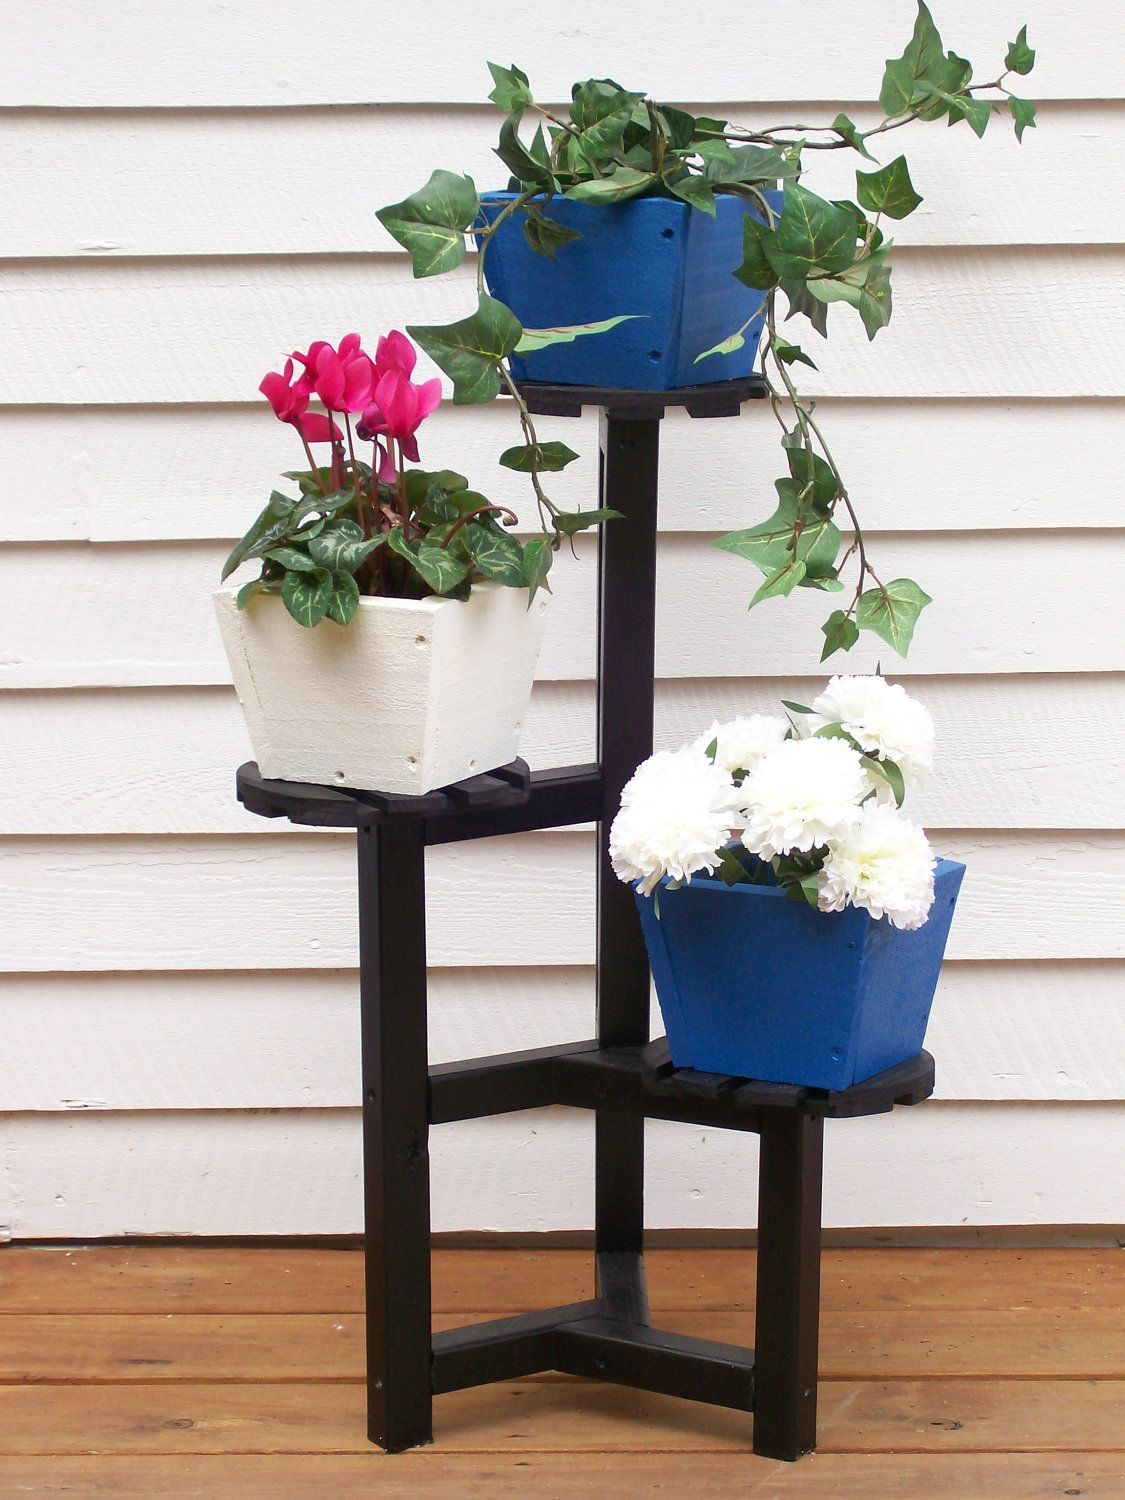 Flower Pot Stands With Wheels